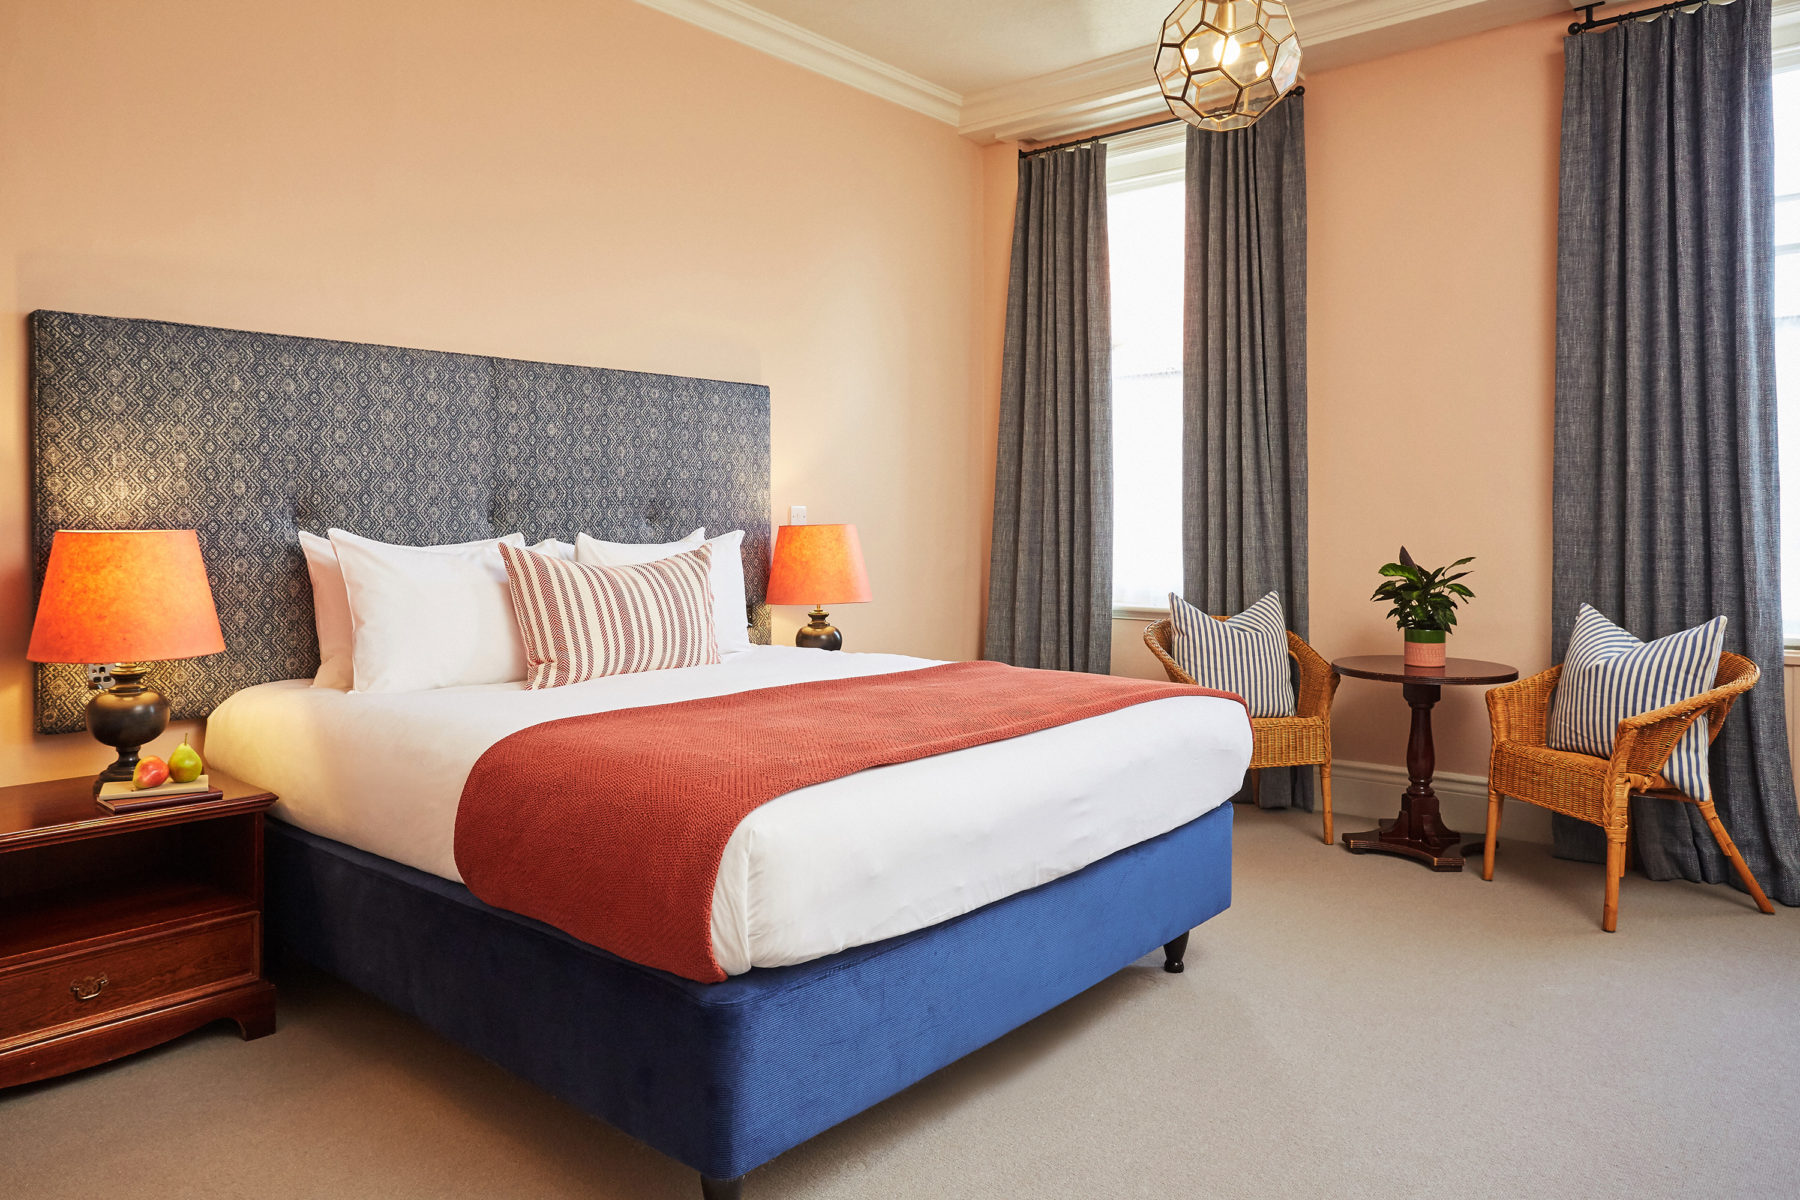 Bedrooms at the Green Dragon Hotel, Hereford